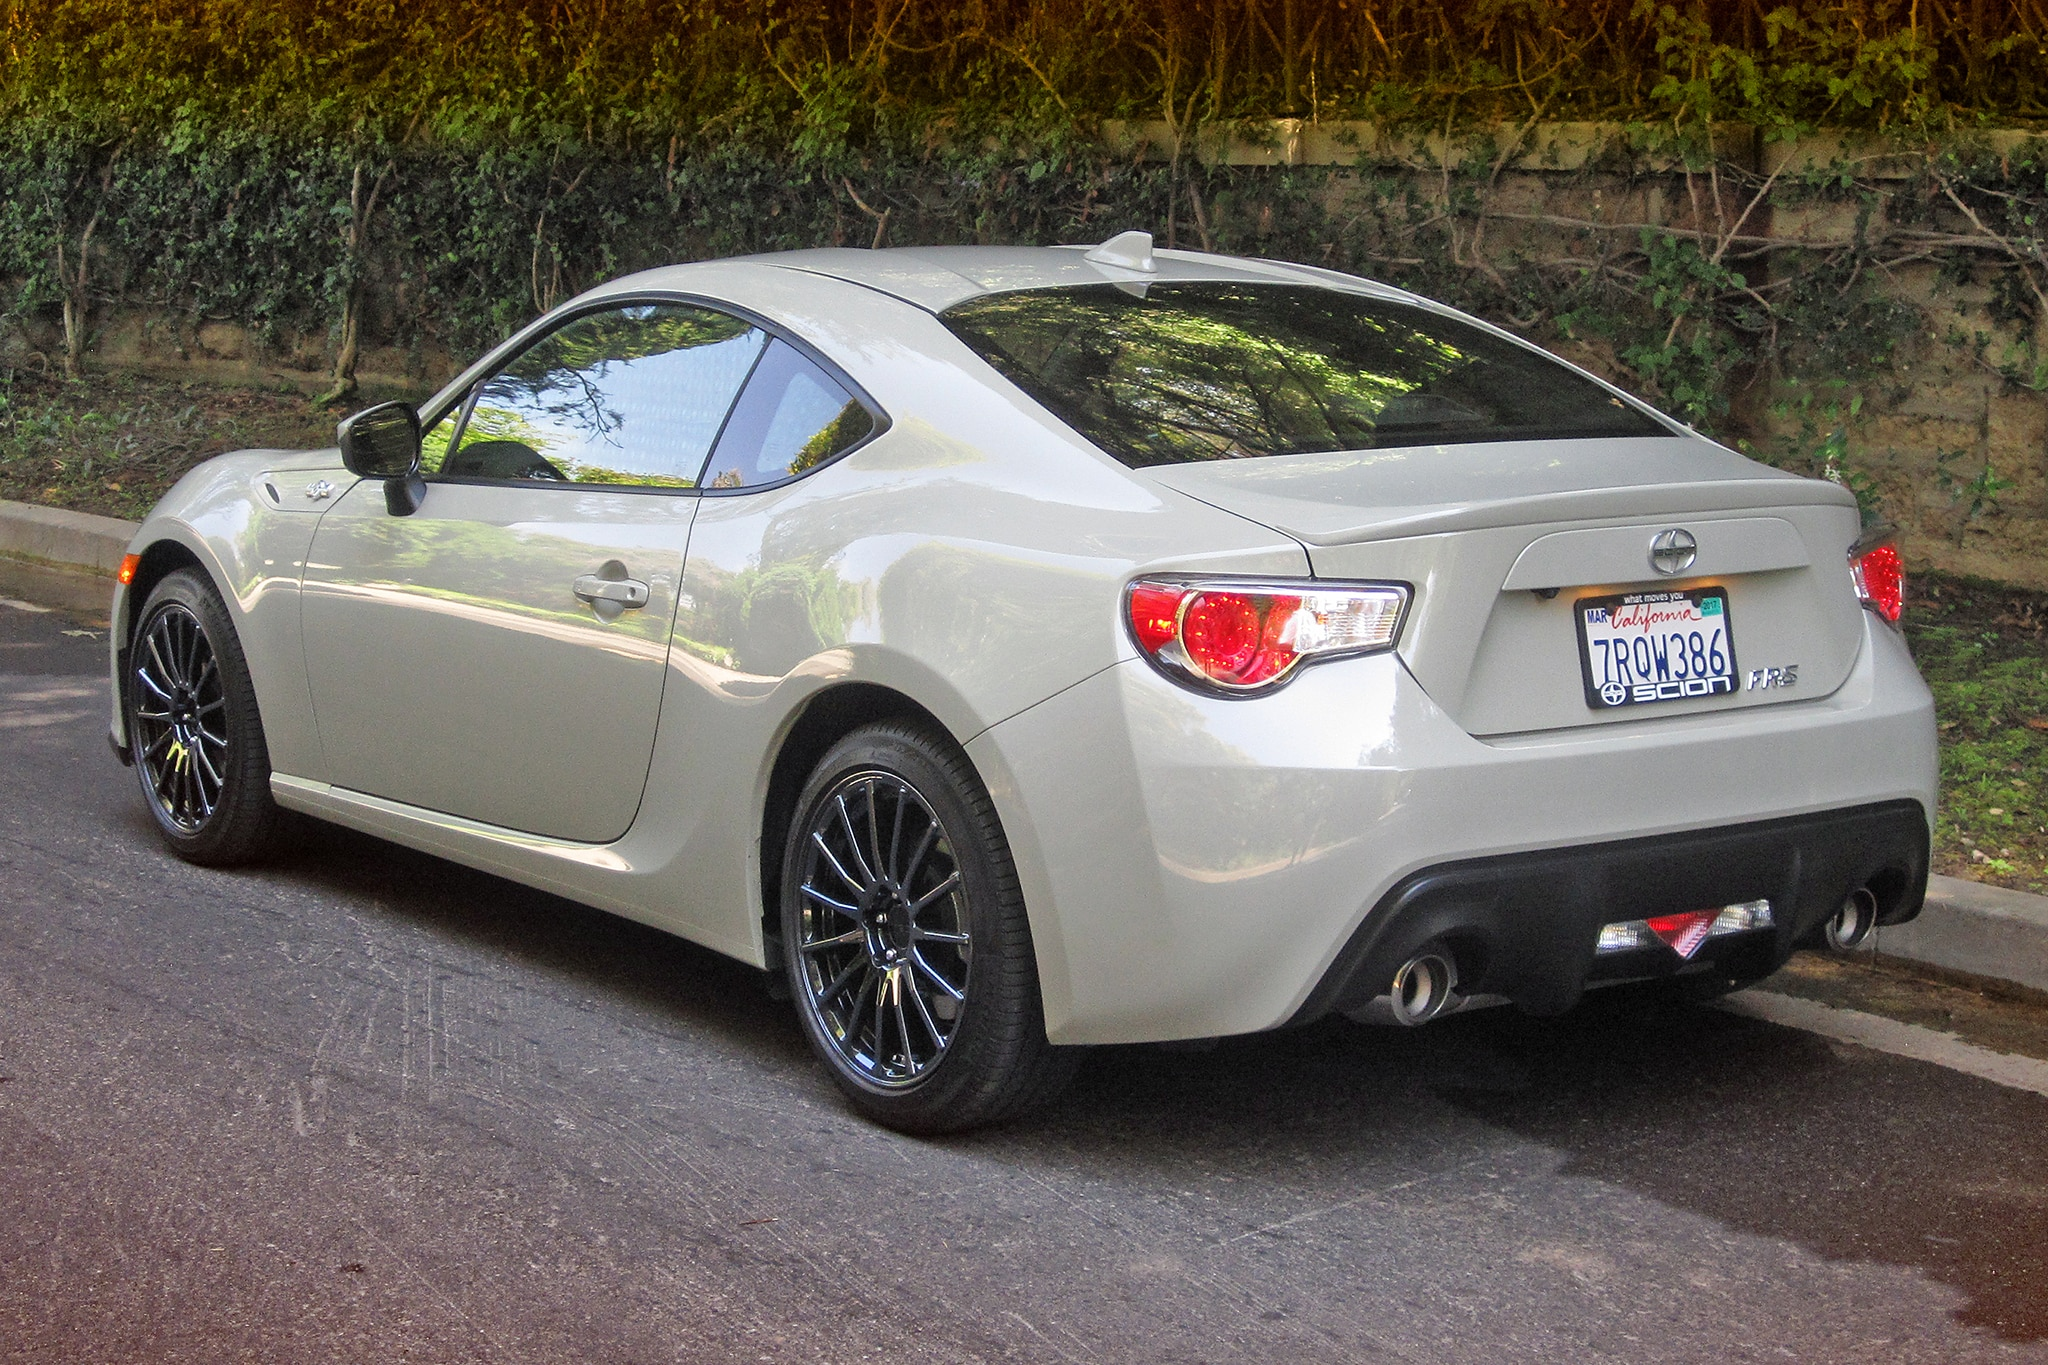 Scion Tc 0-60 >> One Week With: 2016 Scion FR-S Release Series 2.0